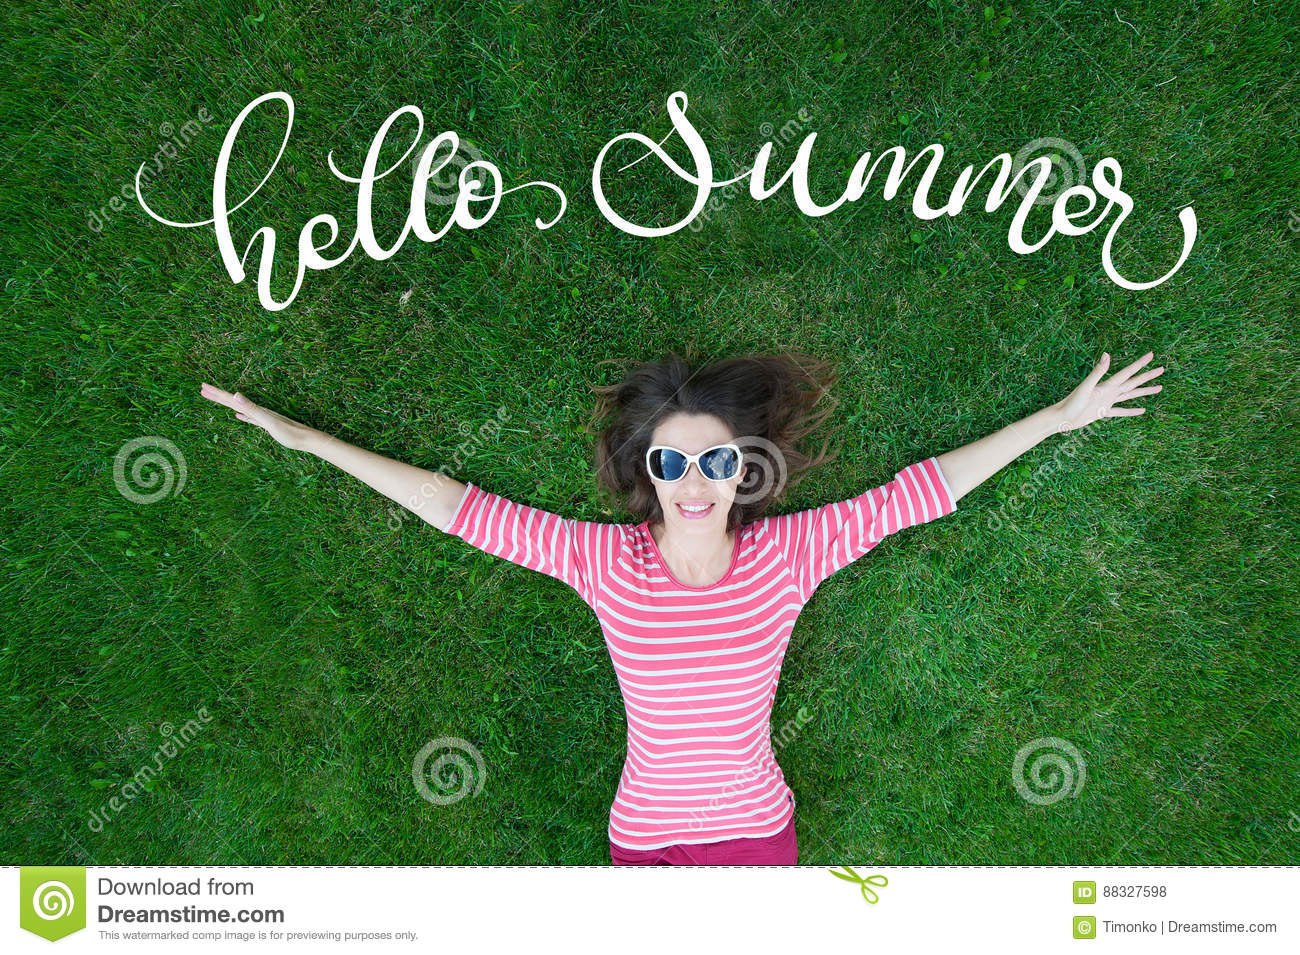 Beautiful Young Woman Outdoors in Green Grass and text Hello Summer. Calligraphy lettering